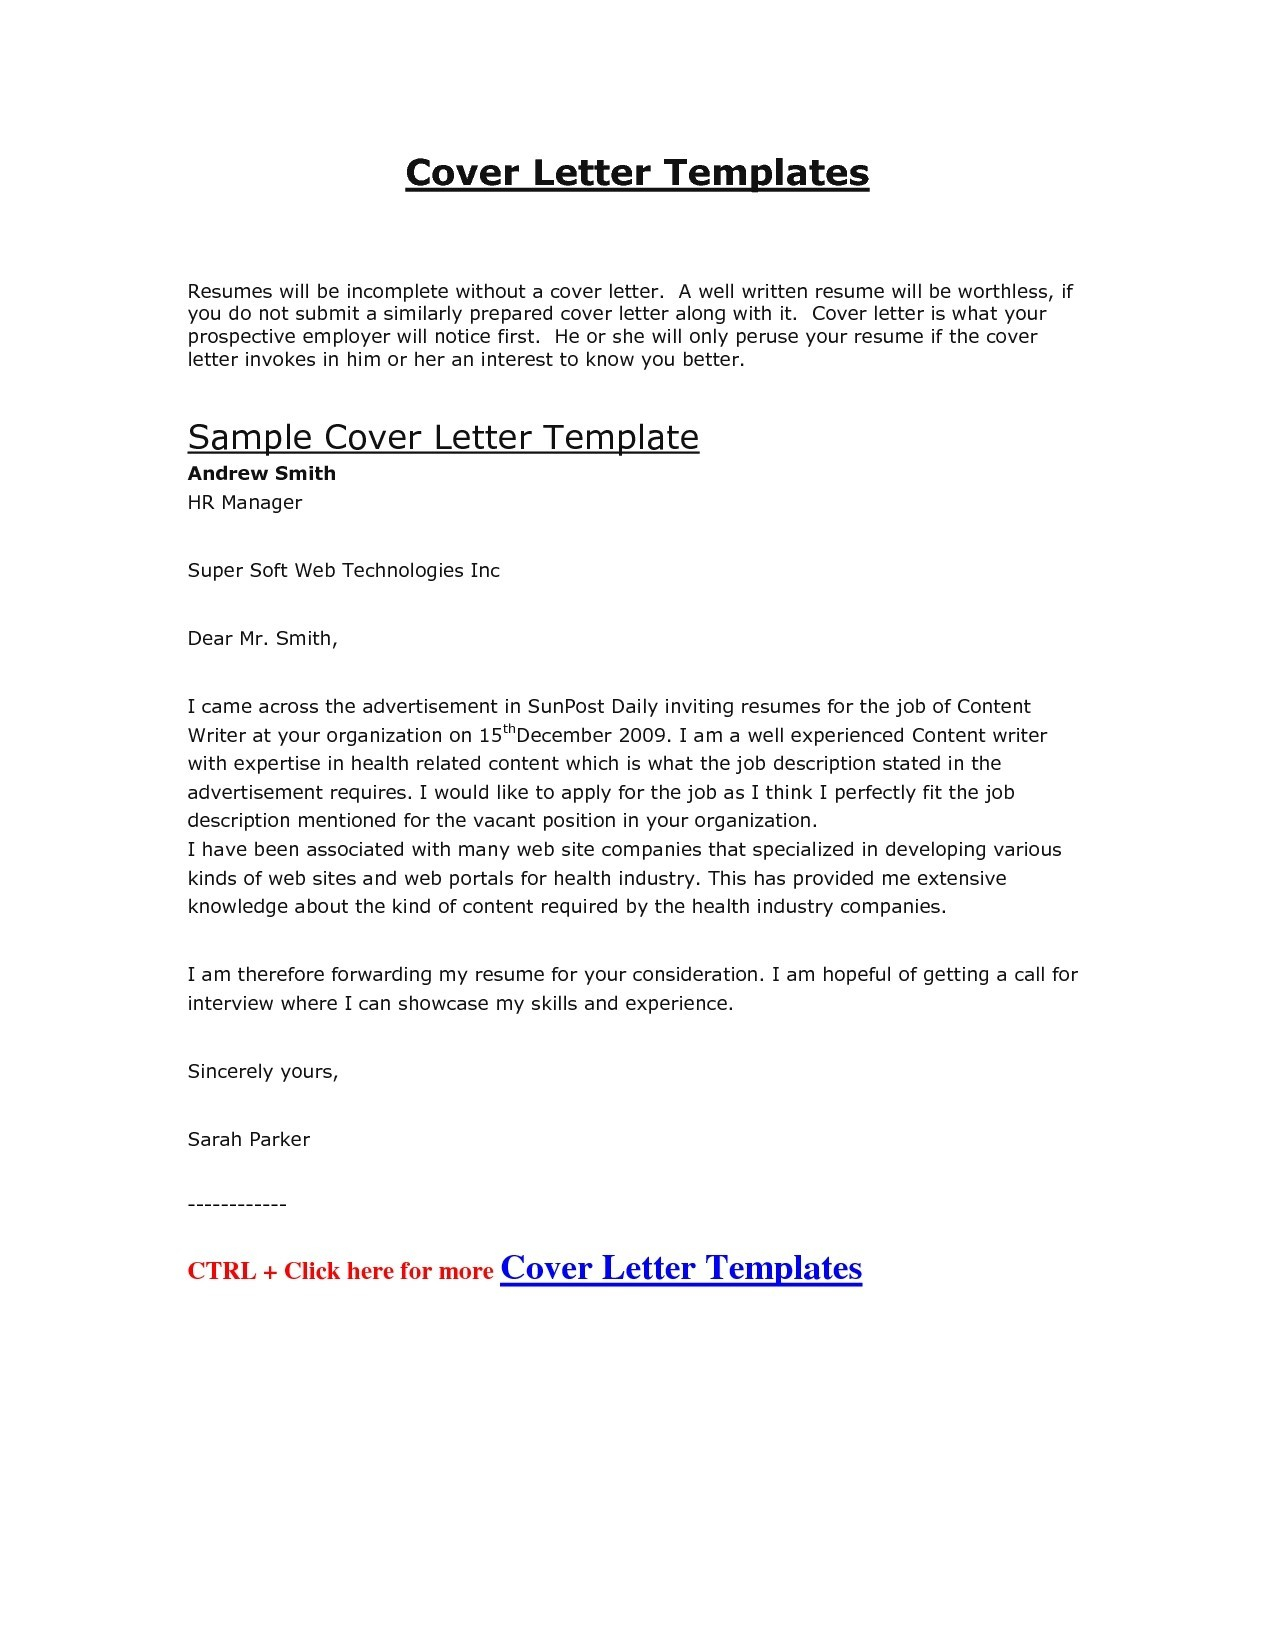 Good Cover Letter Template - Job Application Letter format Template Copy Cover Letter Template Hr